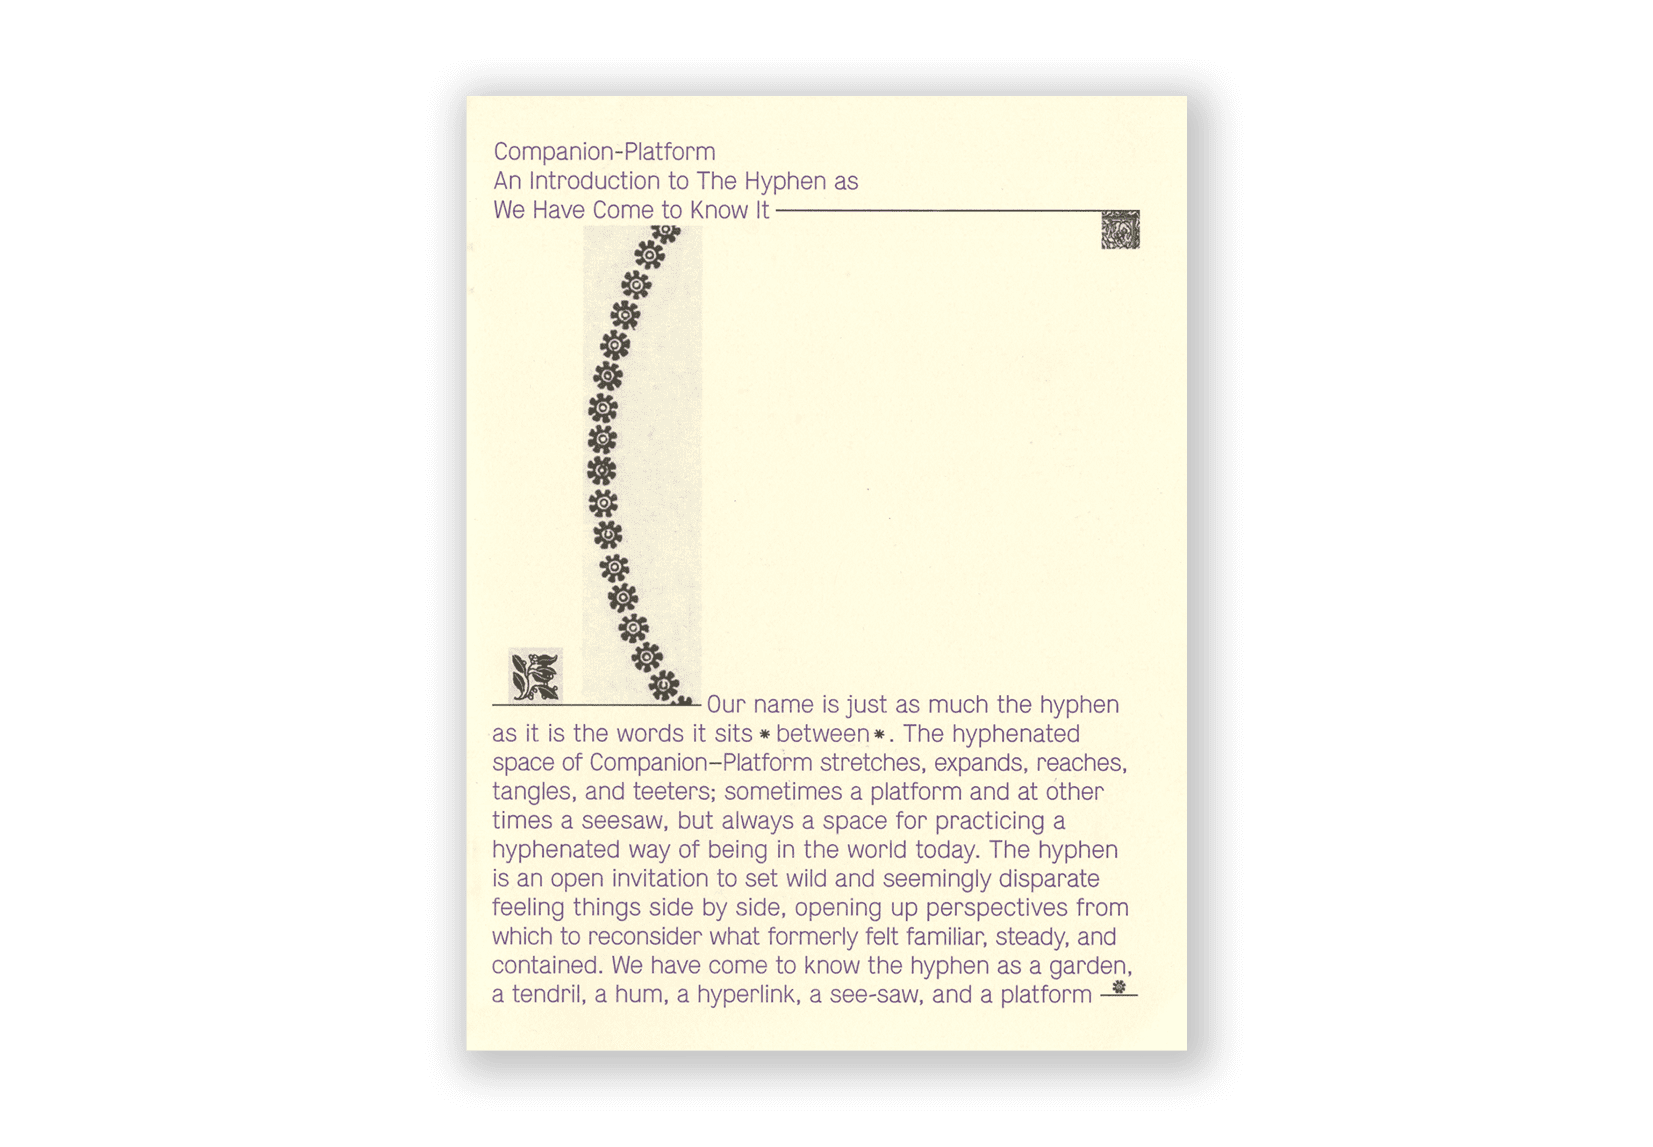 A cream colored cover nearly covered in purple text that describes the importance of the hyphen in our name Companion–Platform. Scans of black and white floral ornaments breakup the text.